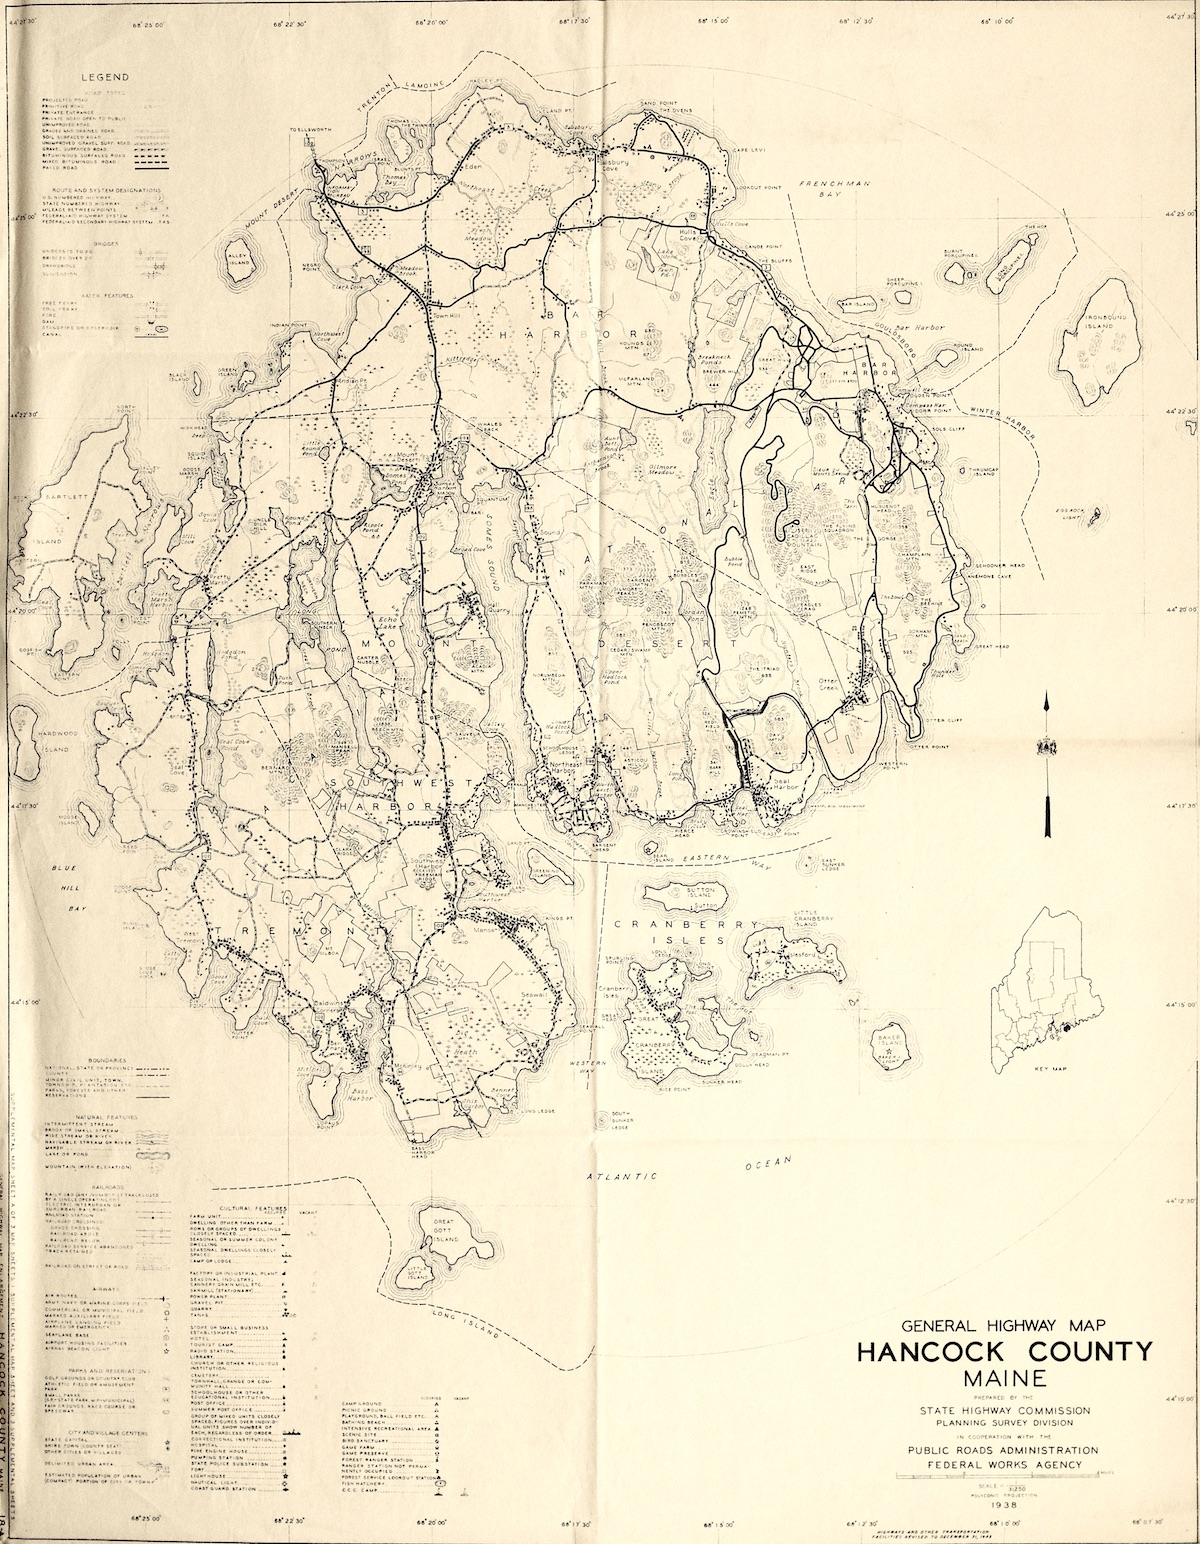 Highway Map of Hancock County